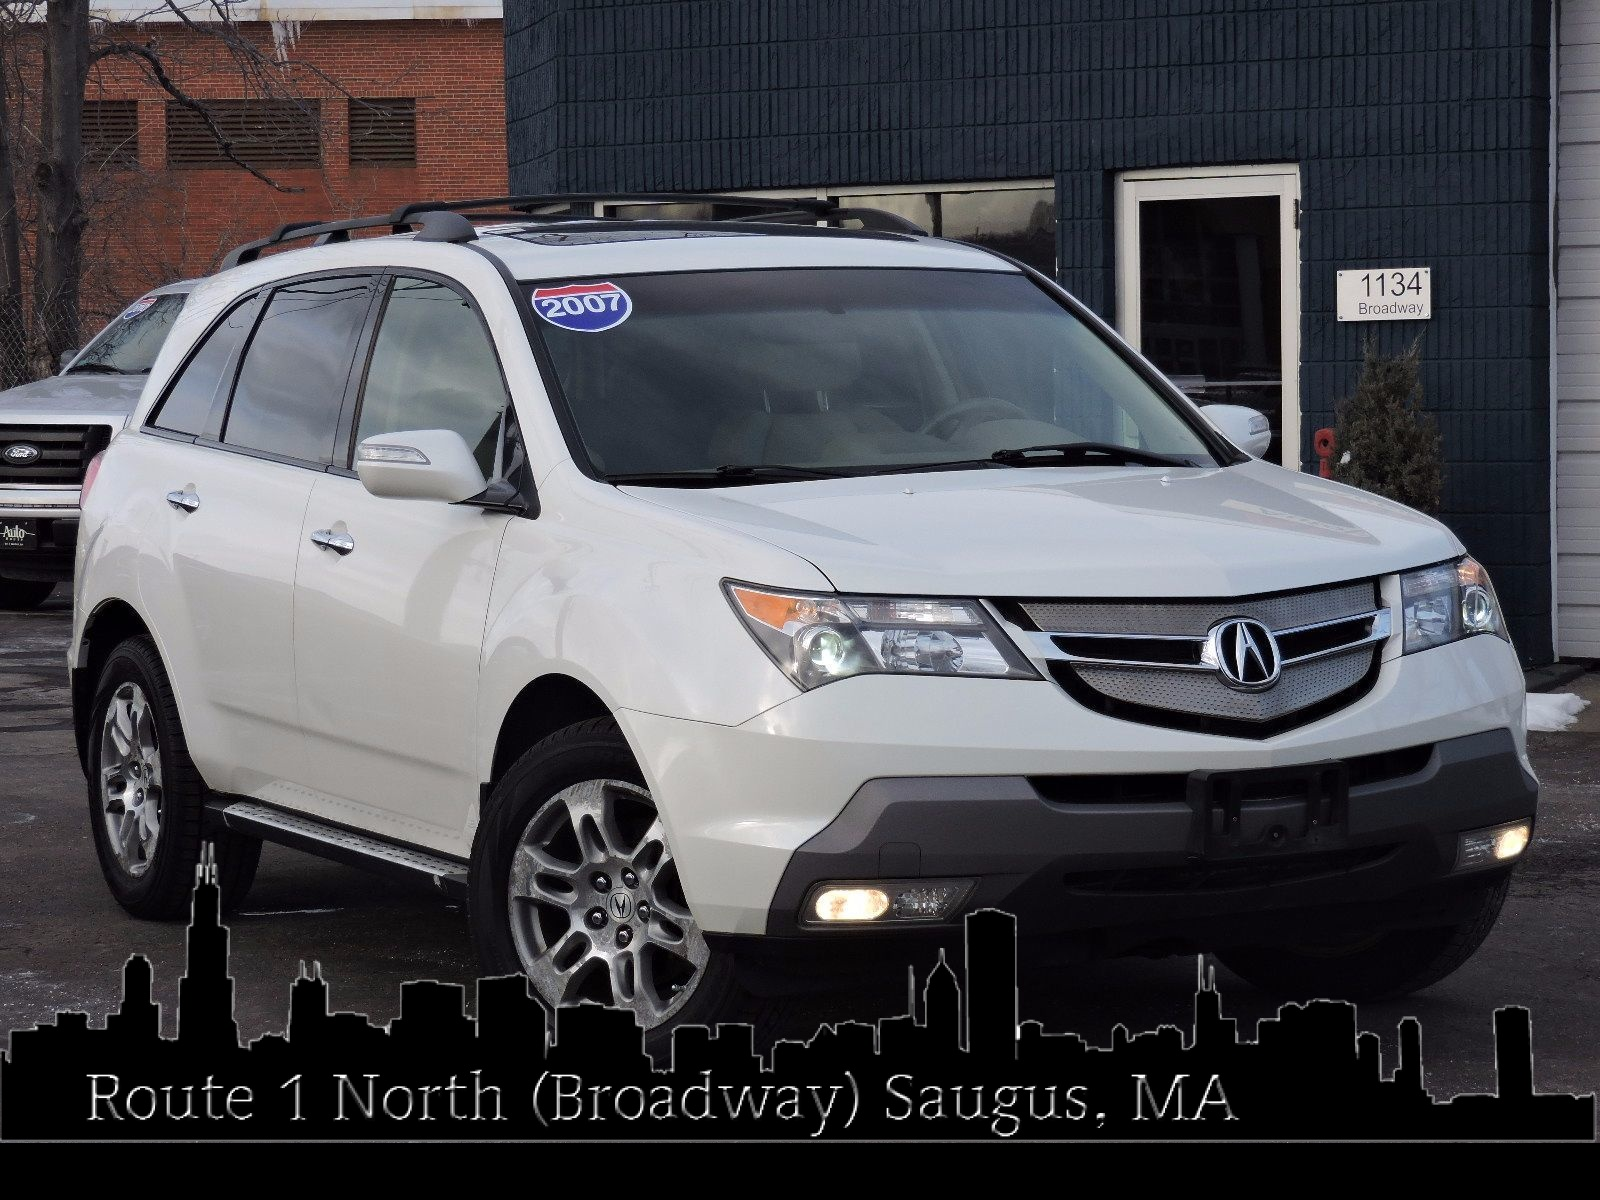 Worksheet. Used 2007 Acura MDX TechEntertainment Pkg at Auto House USA Saugus